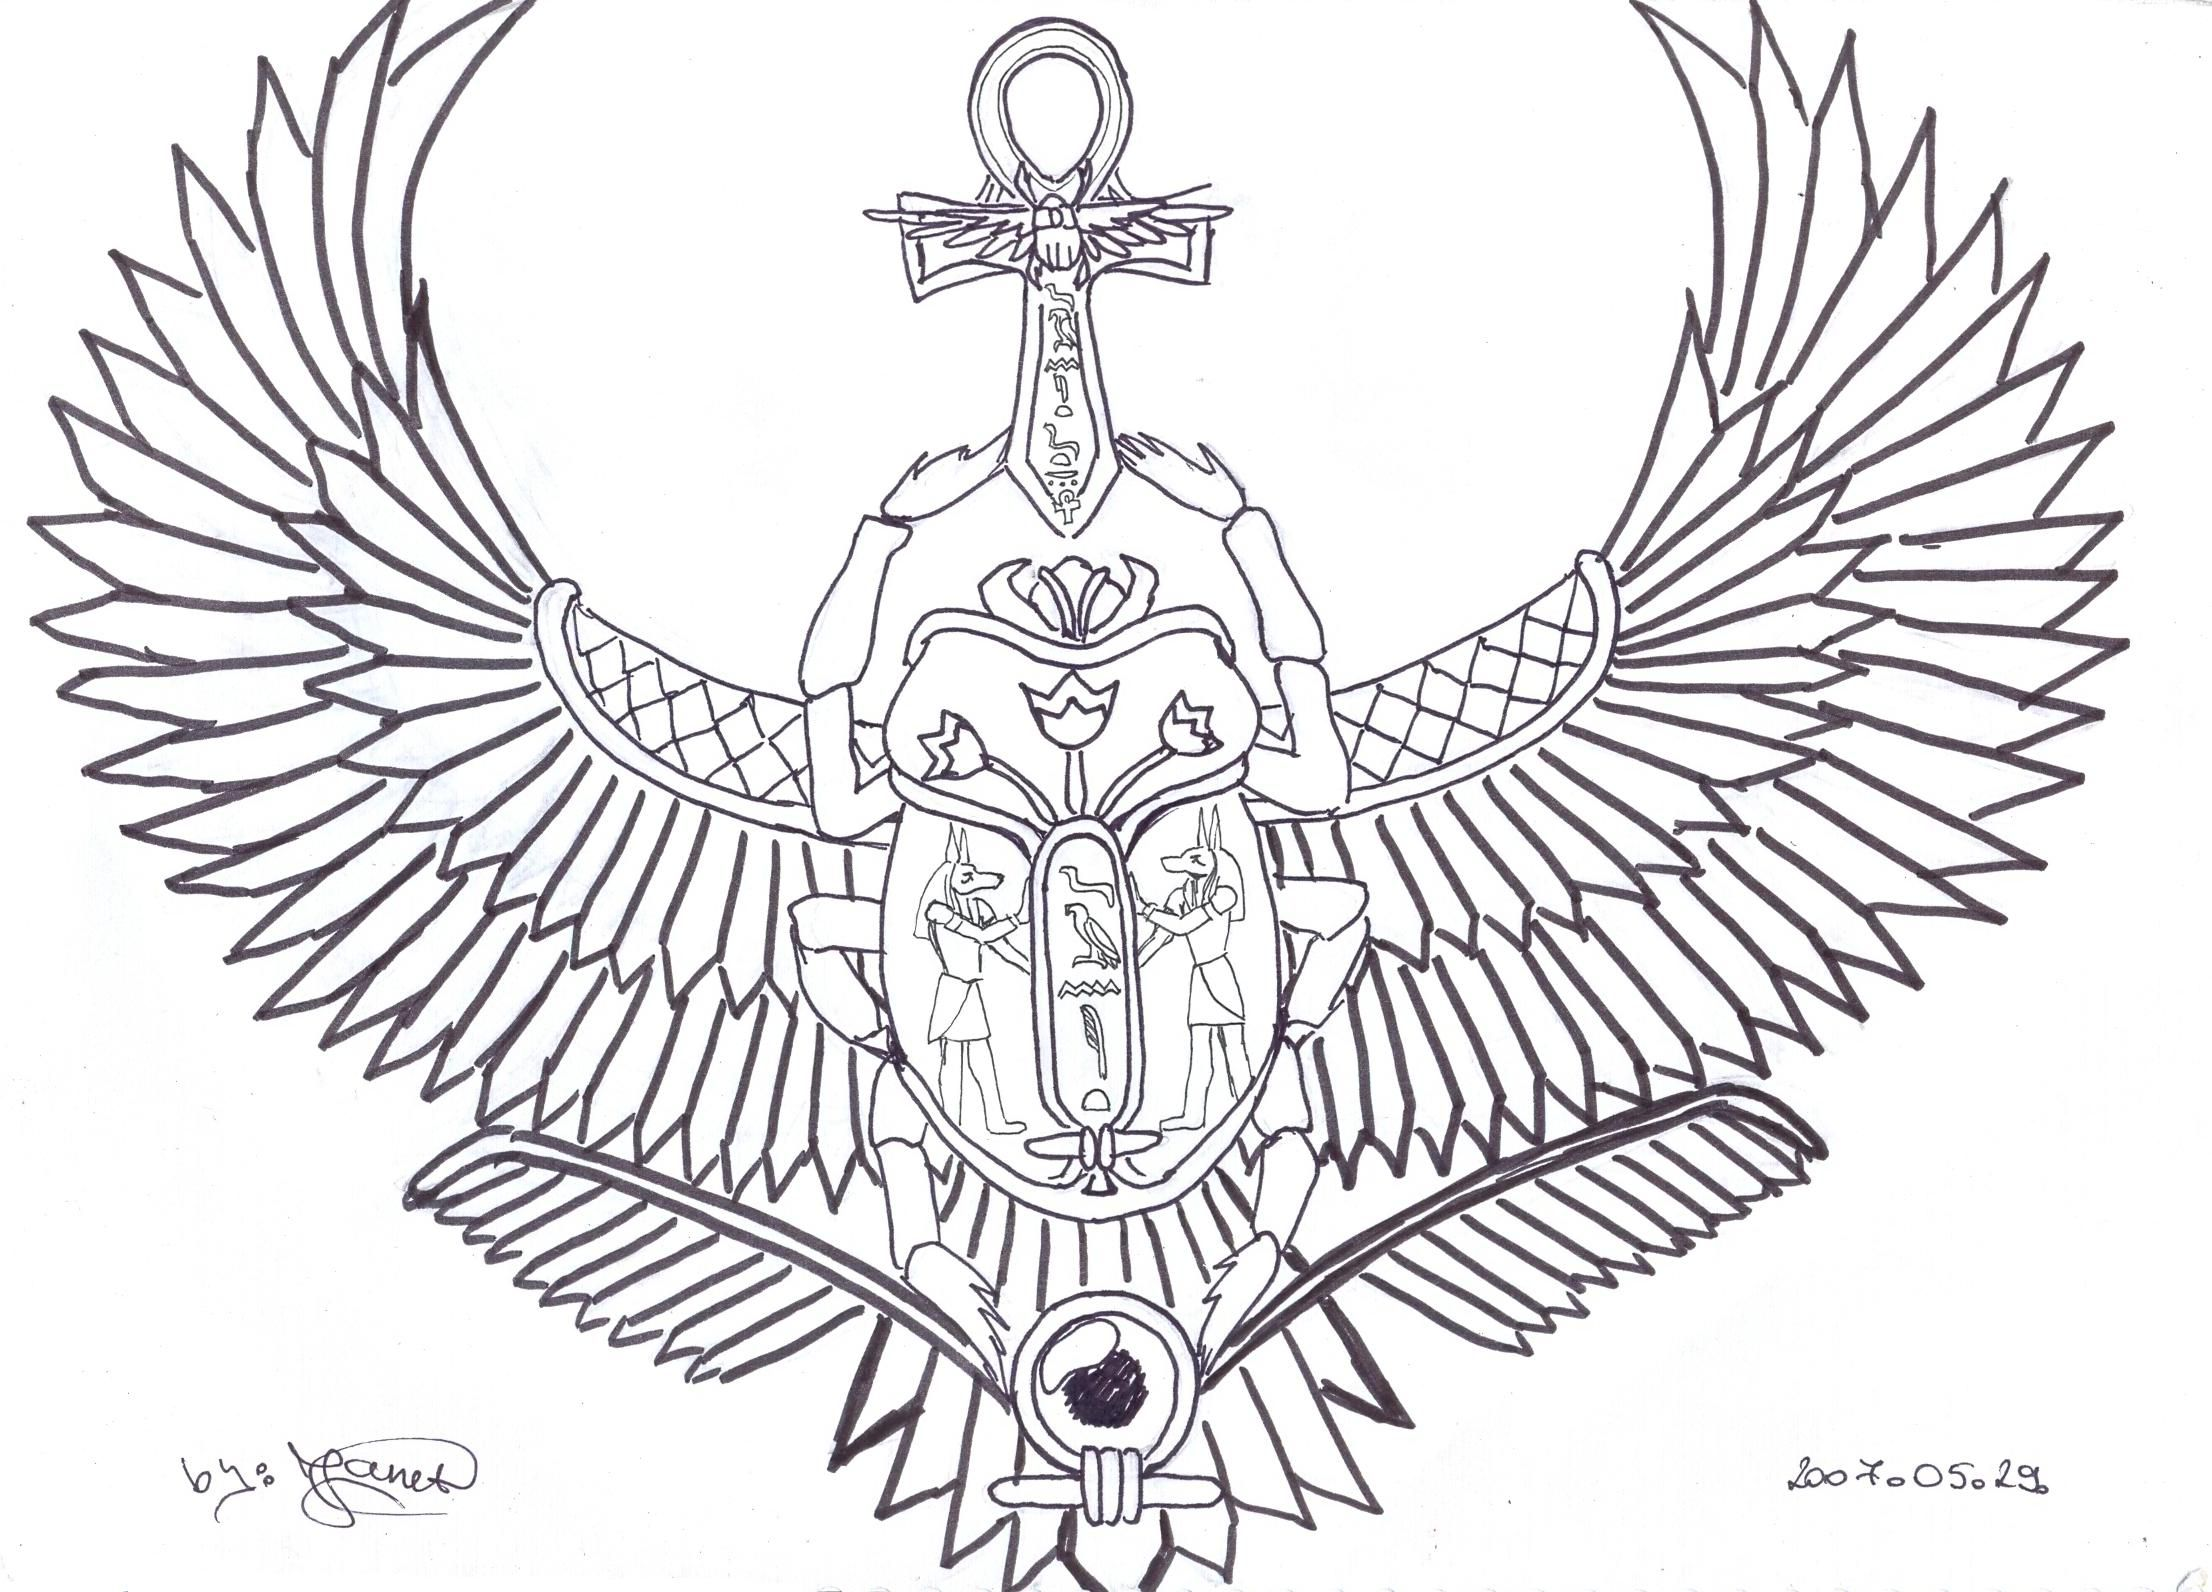 Holding The Ankh On My Back Scarab Tattoo Egypt Tattoo Beetle Tattoo